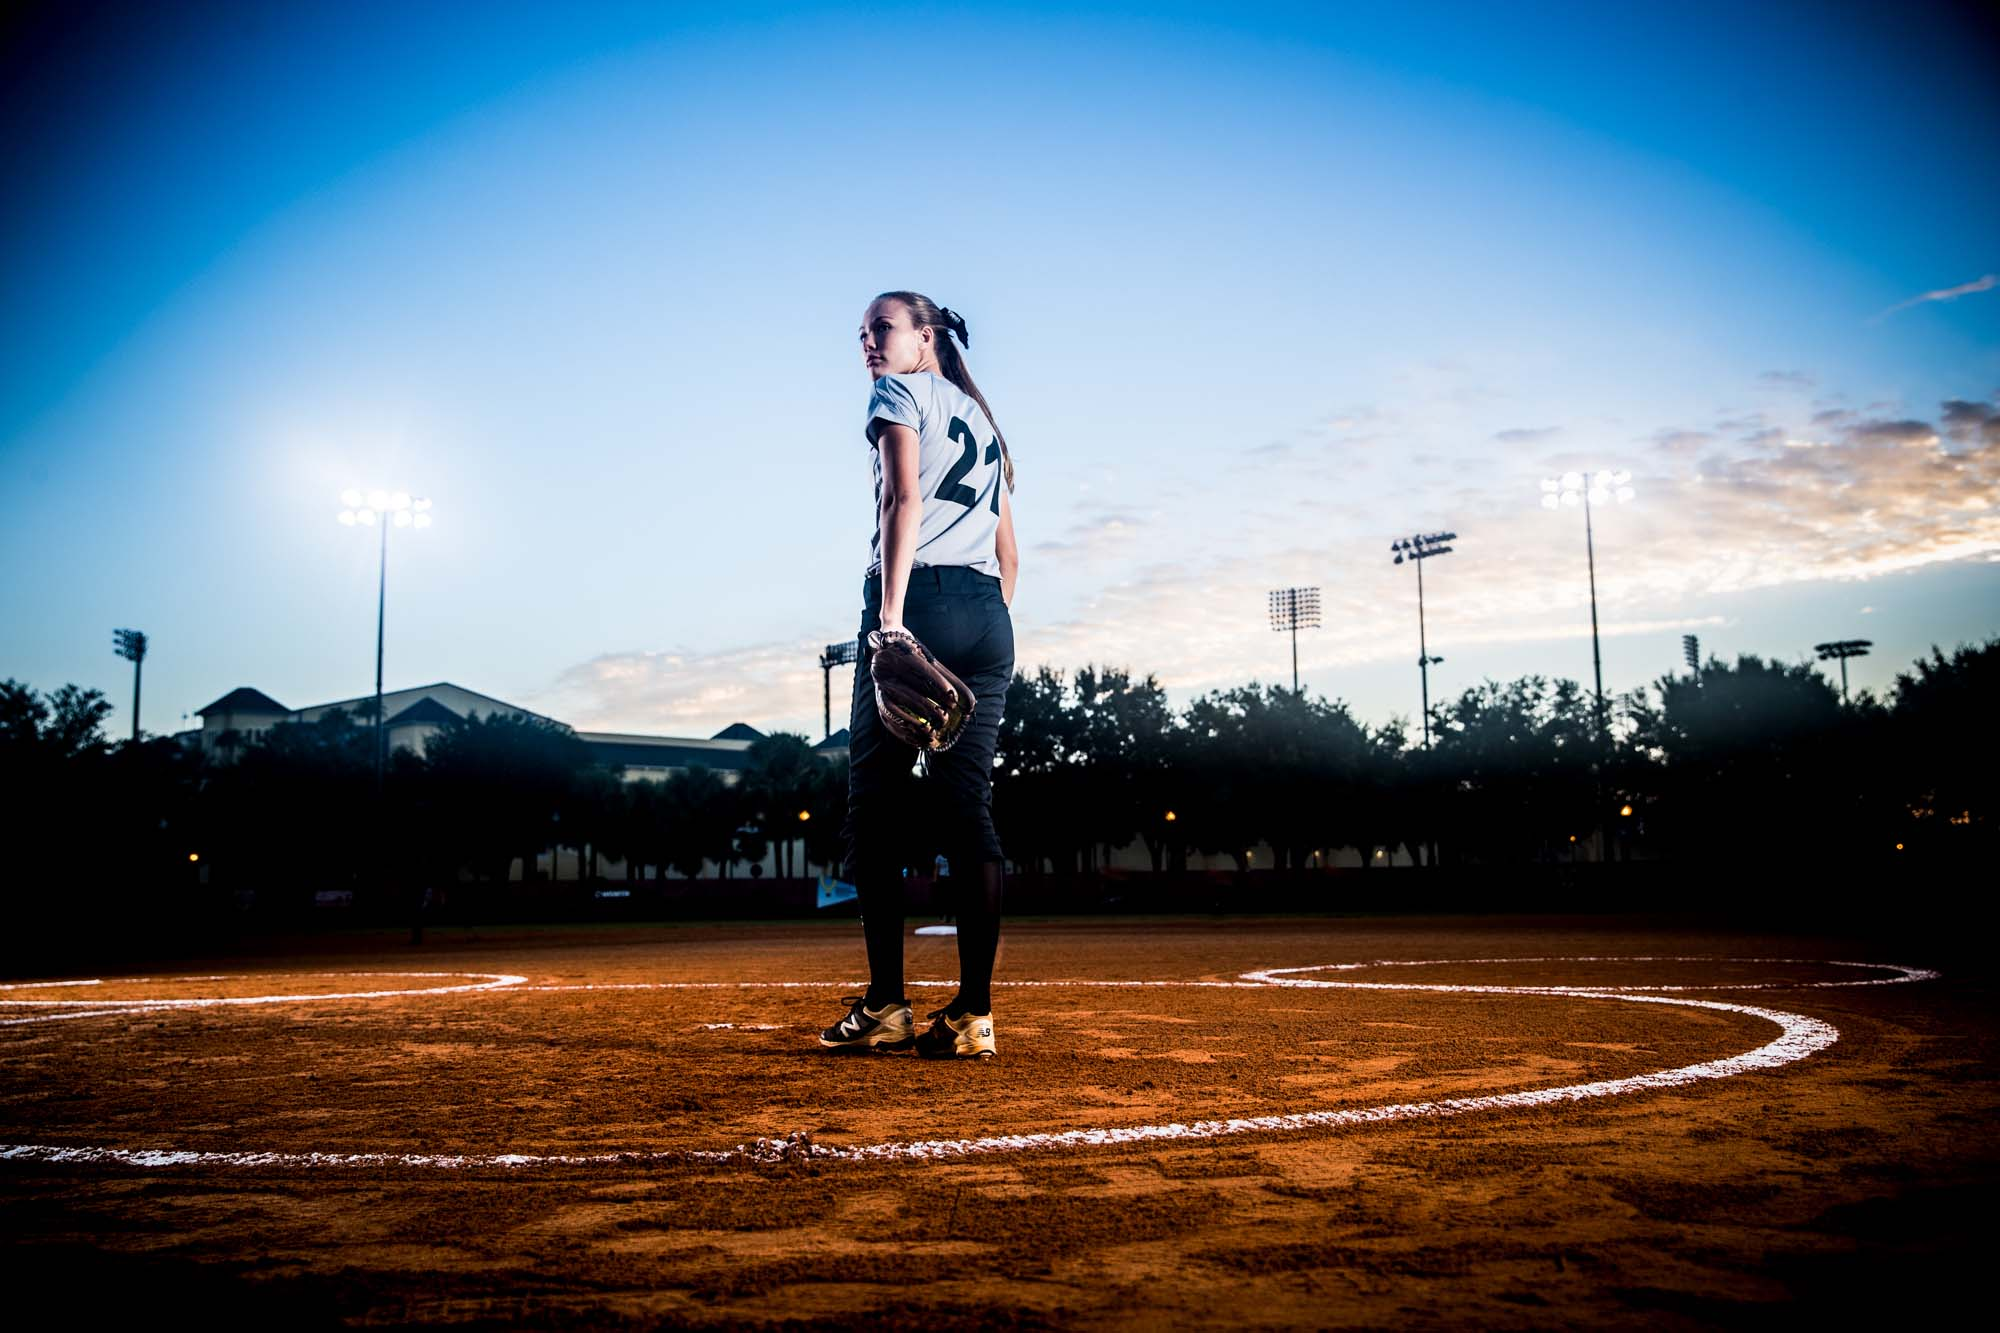 ESPN_Softball_Pitcher_Port_0316